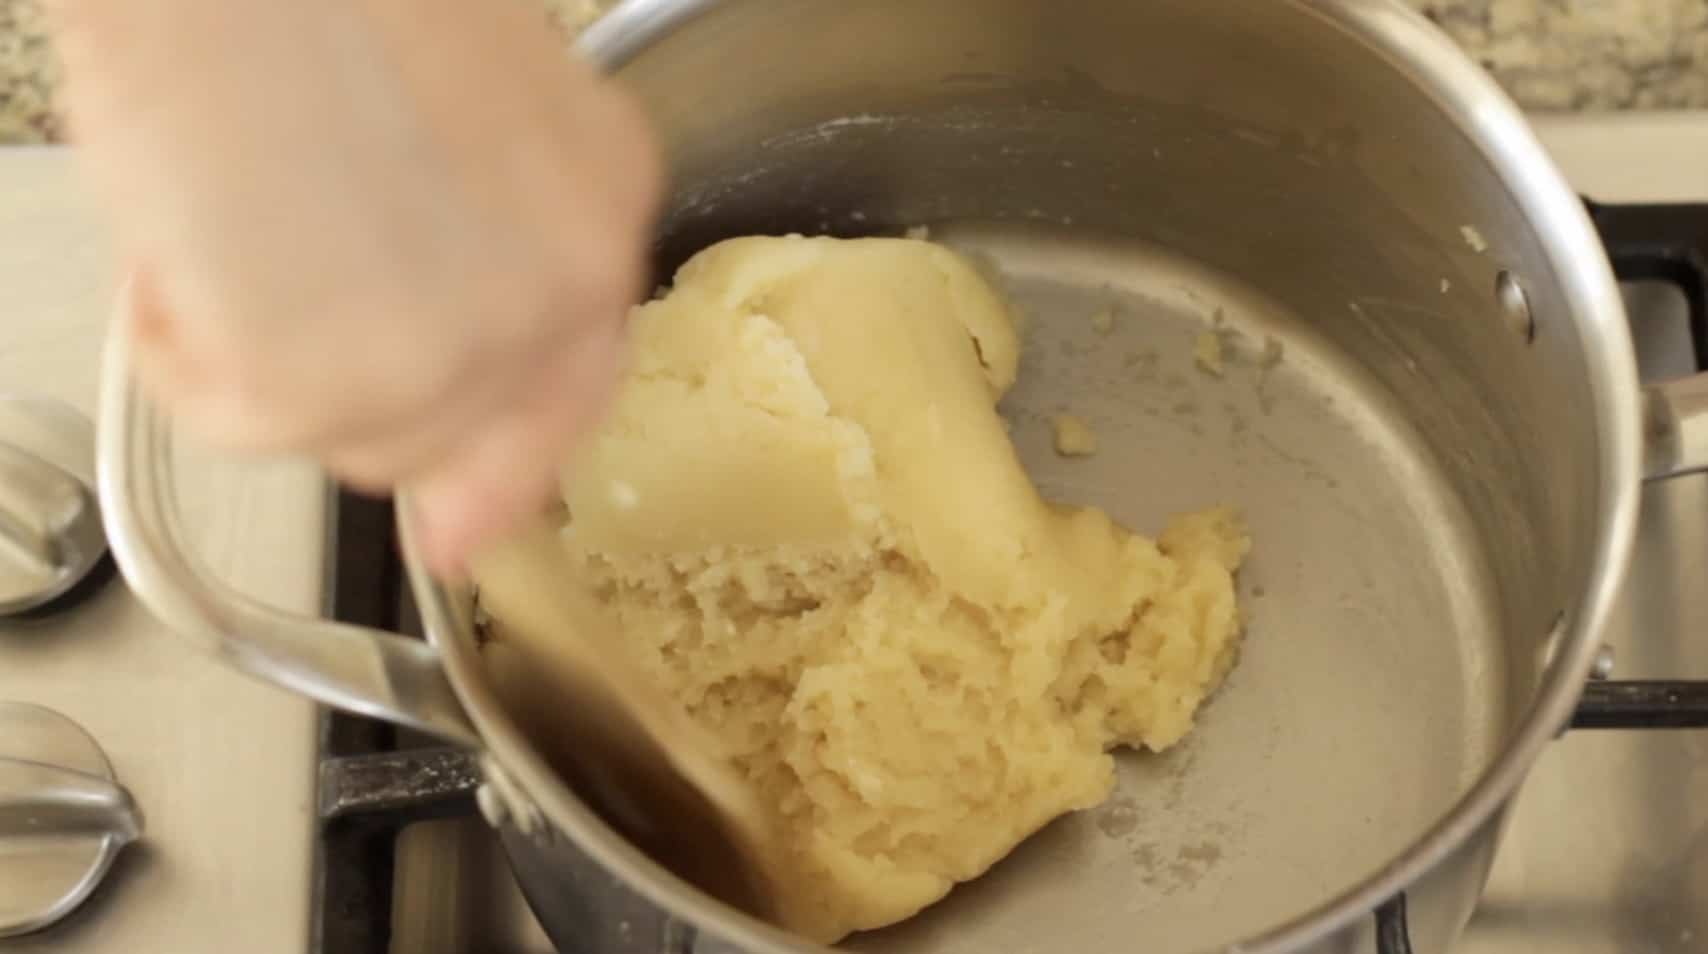 Dough ball being formed as it pulls away from the sides for choux pastry